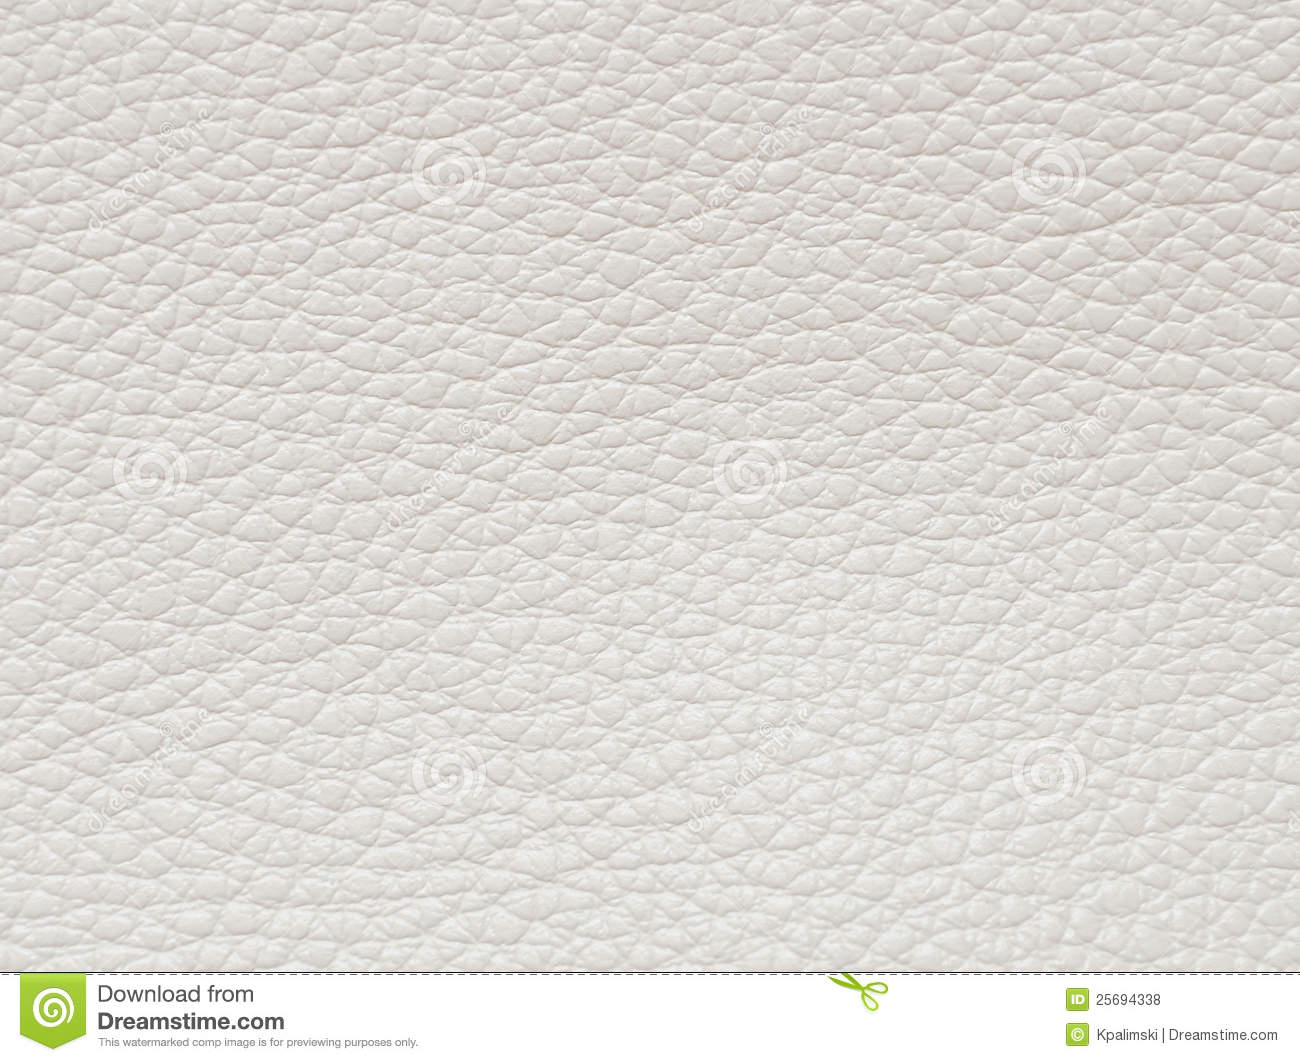 White Leather Texture Royalty Free Stock Photos - Image: 25694338